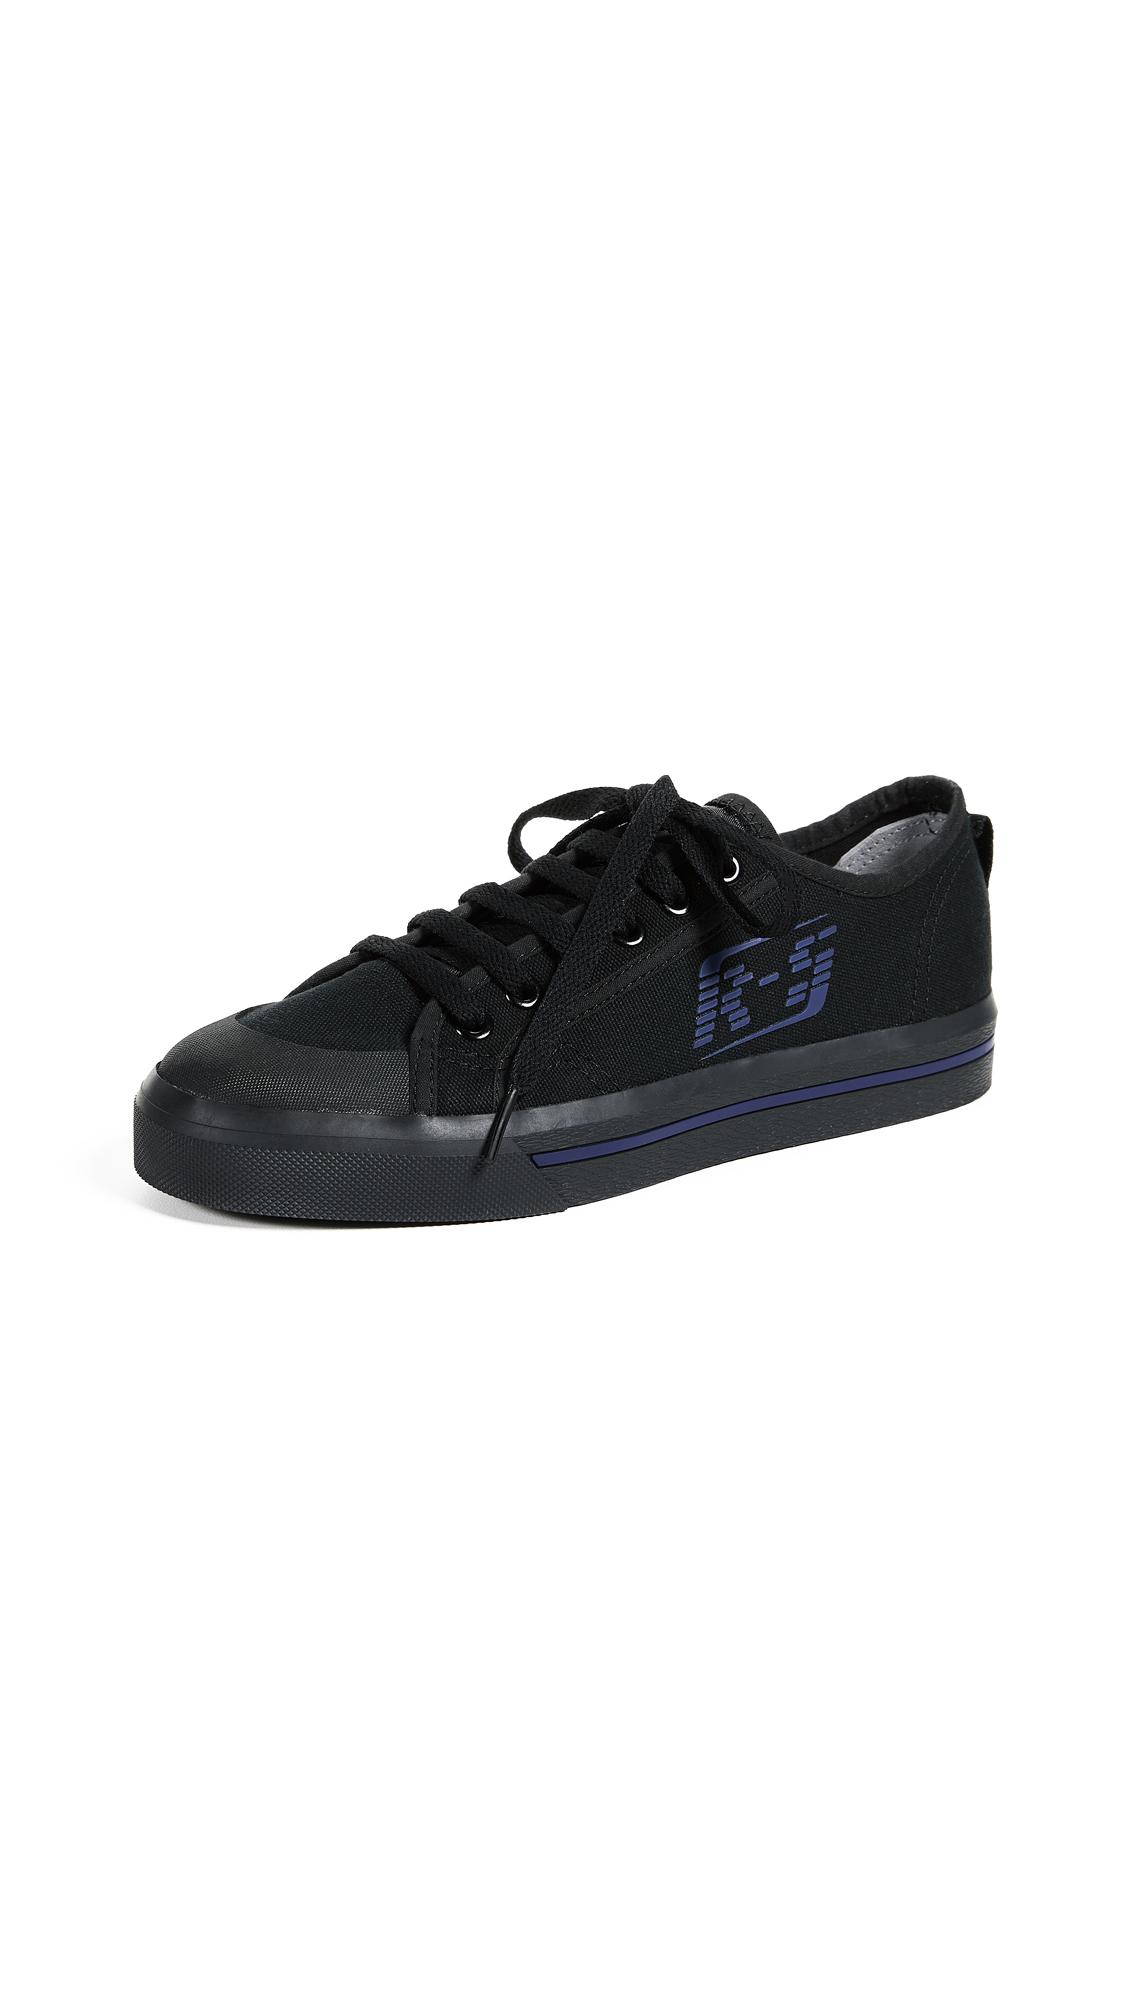 Adidas Raf Simons Spirit Low Sneakers - Black/Night Sky